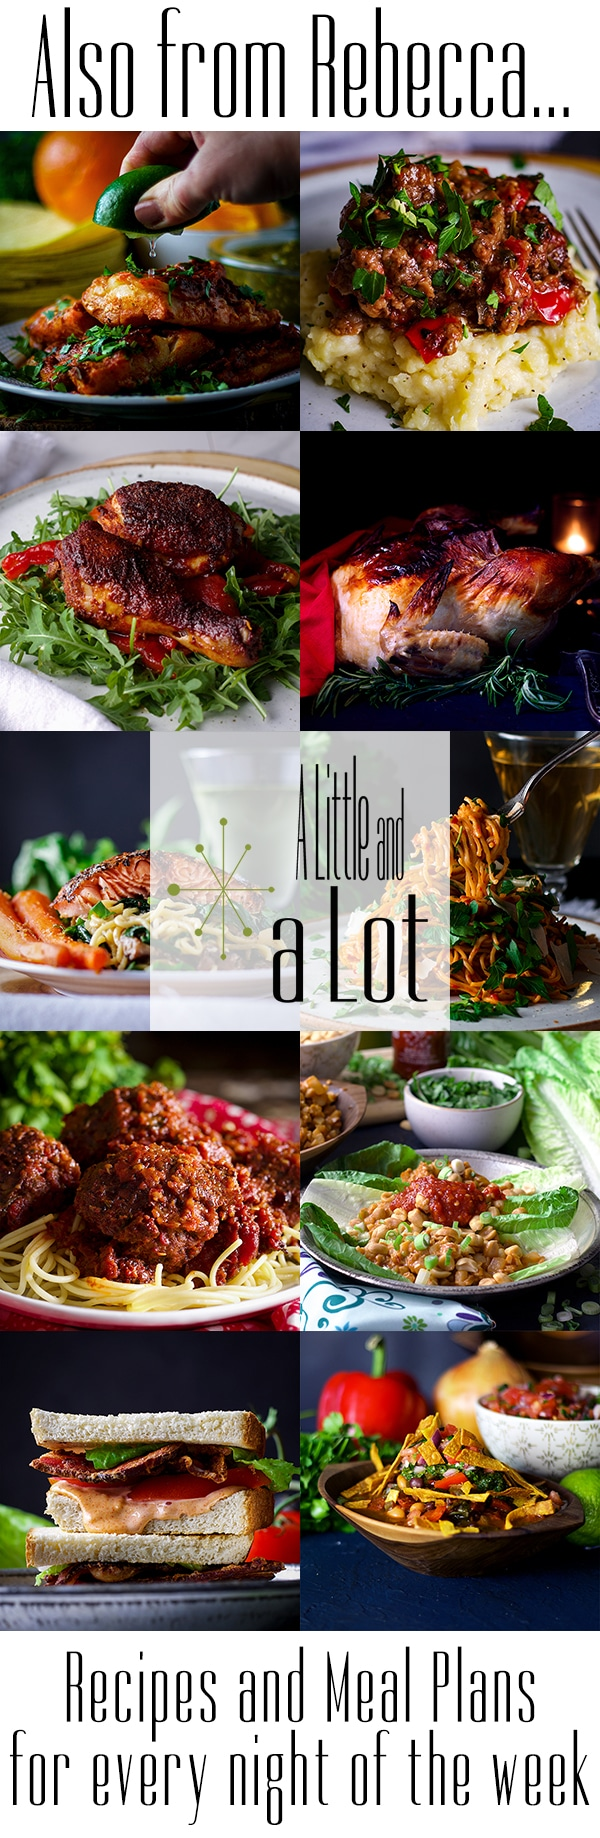 A Little and A Lot | Dinner recipes and meal plans for every night of the week.